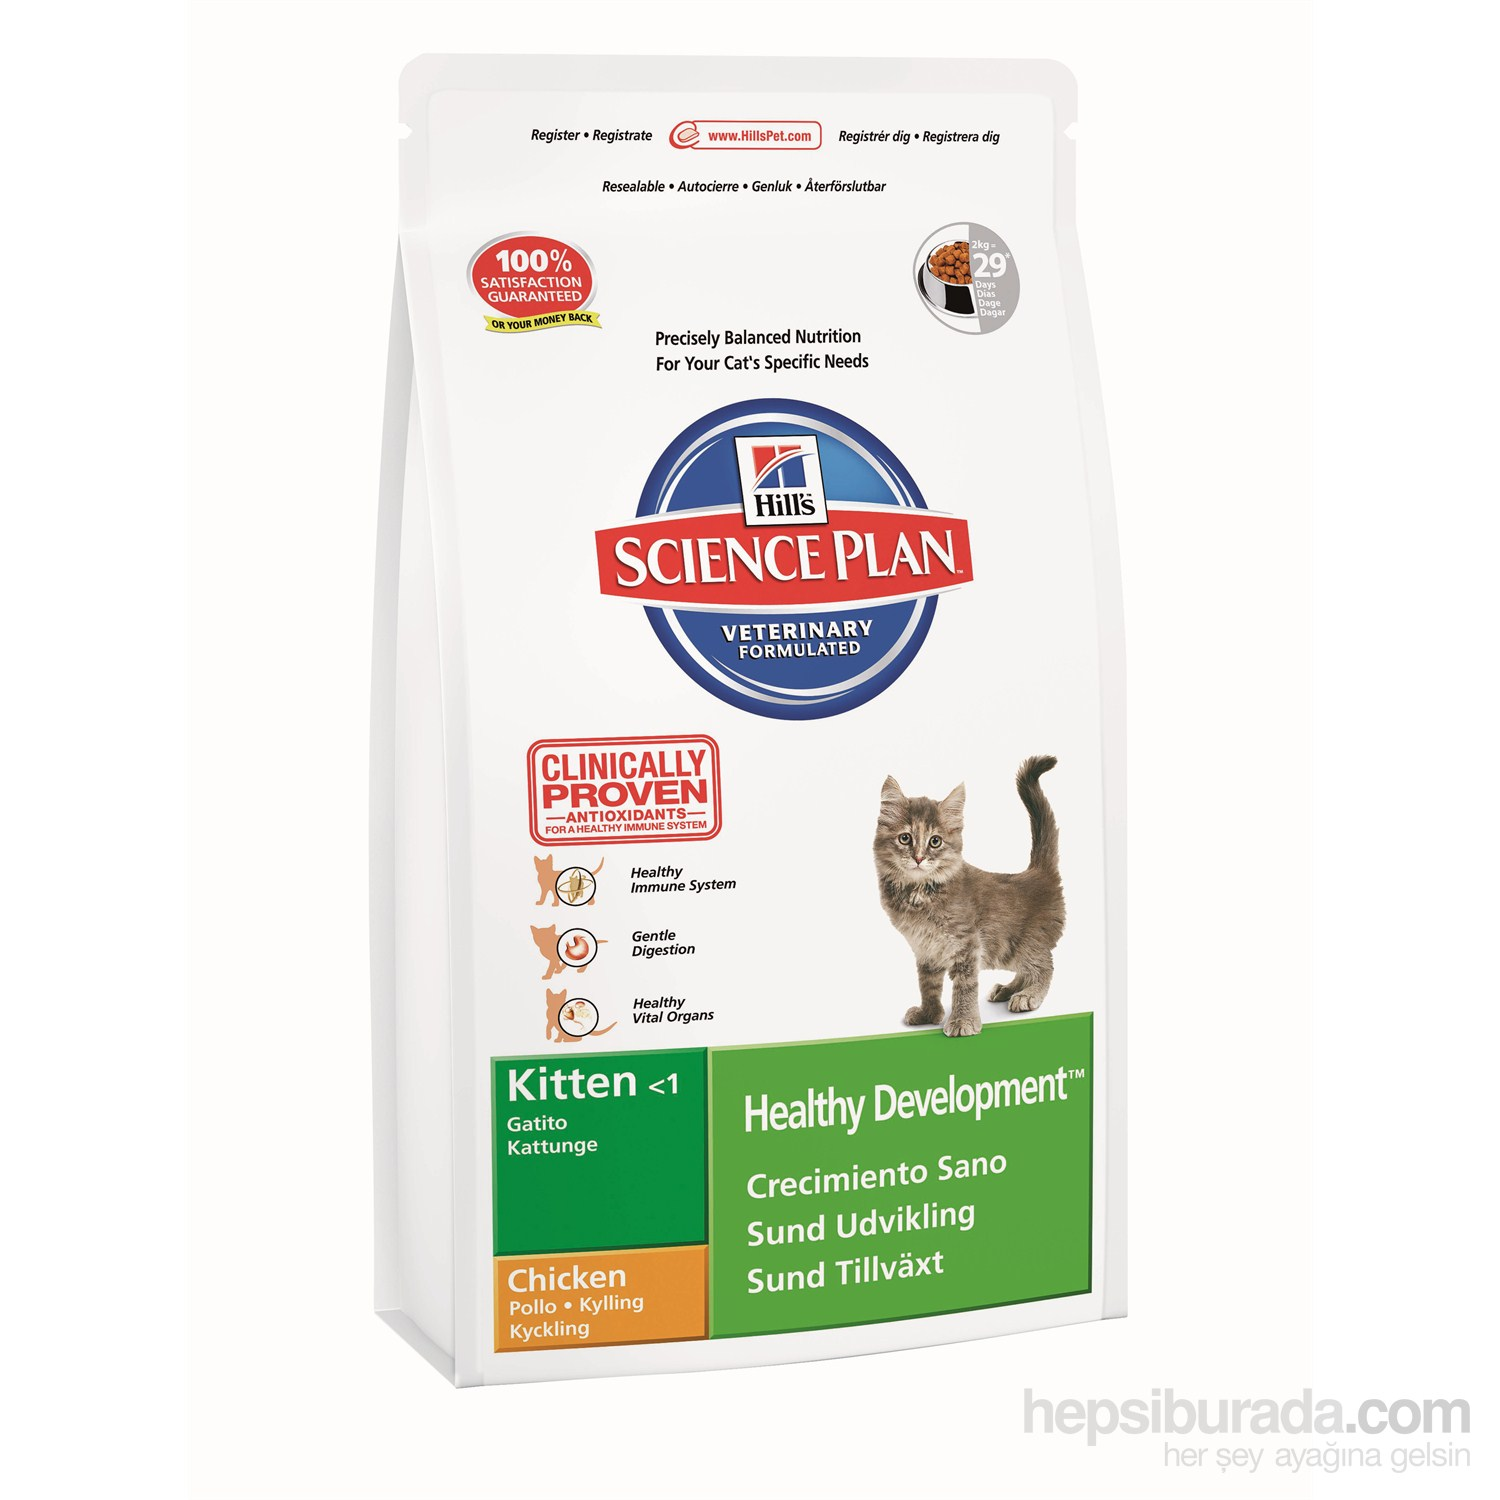 Hill's Science Plan Tavuklu Yavru Kedi Maması 400 Gr (Kitten Healthy Development with Chicken)